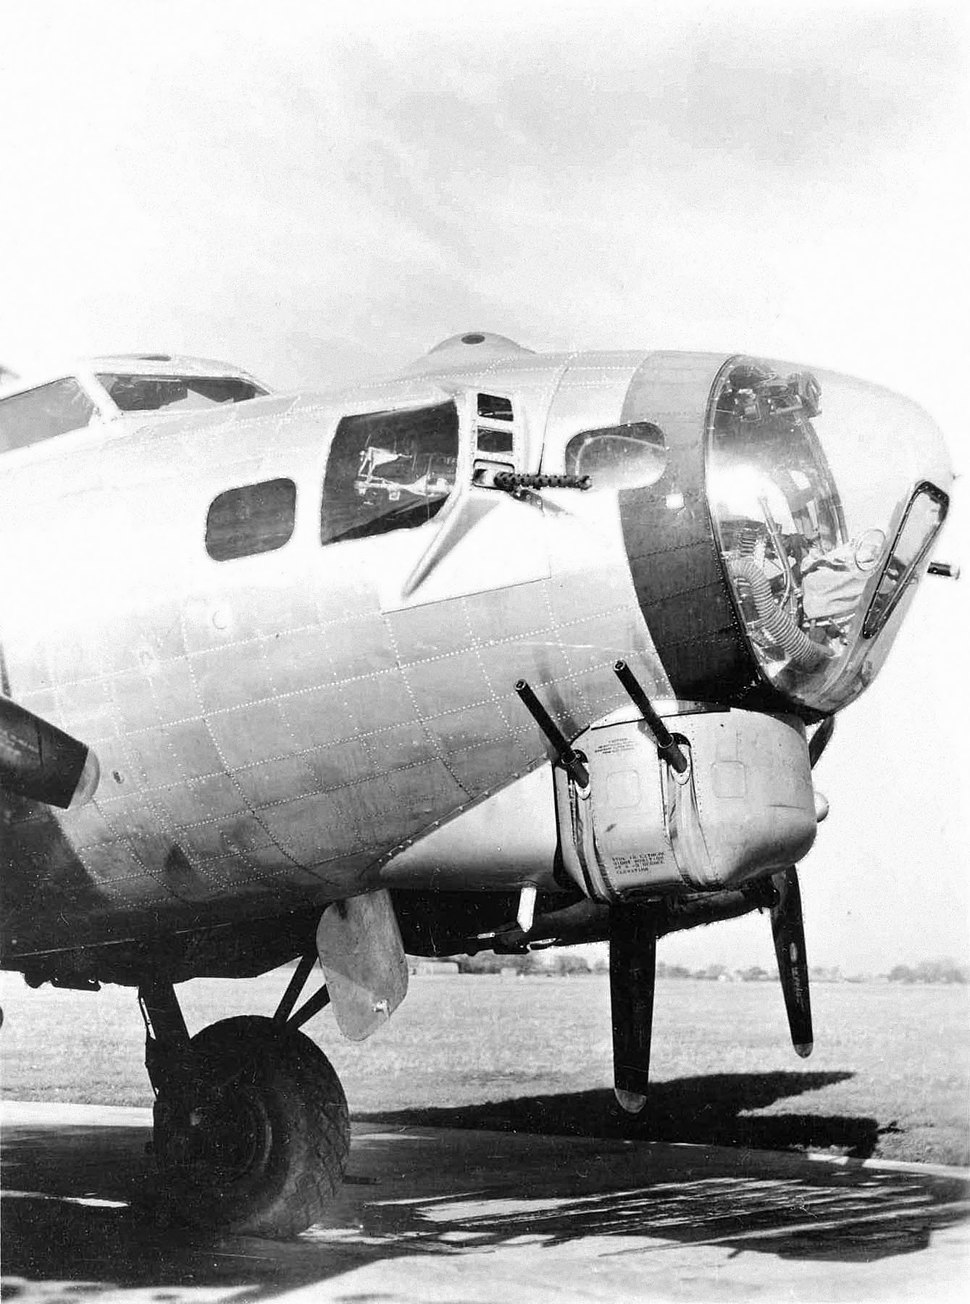 B-17G Nose in Detail